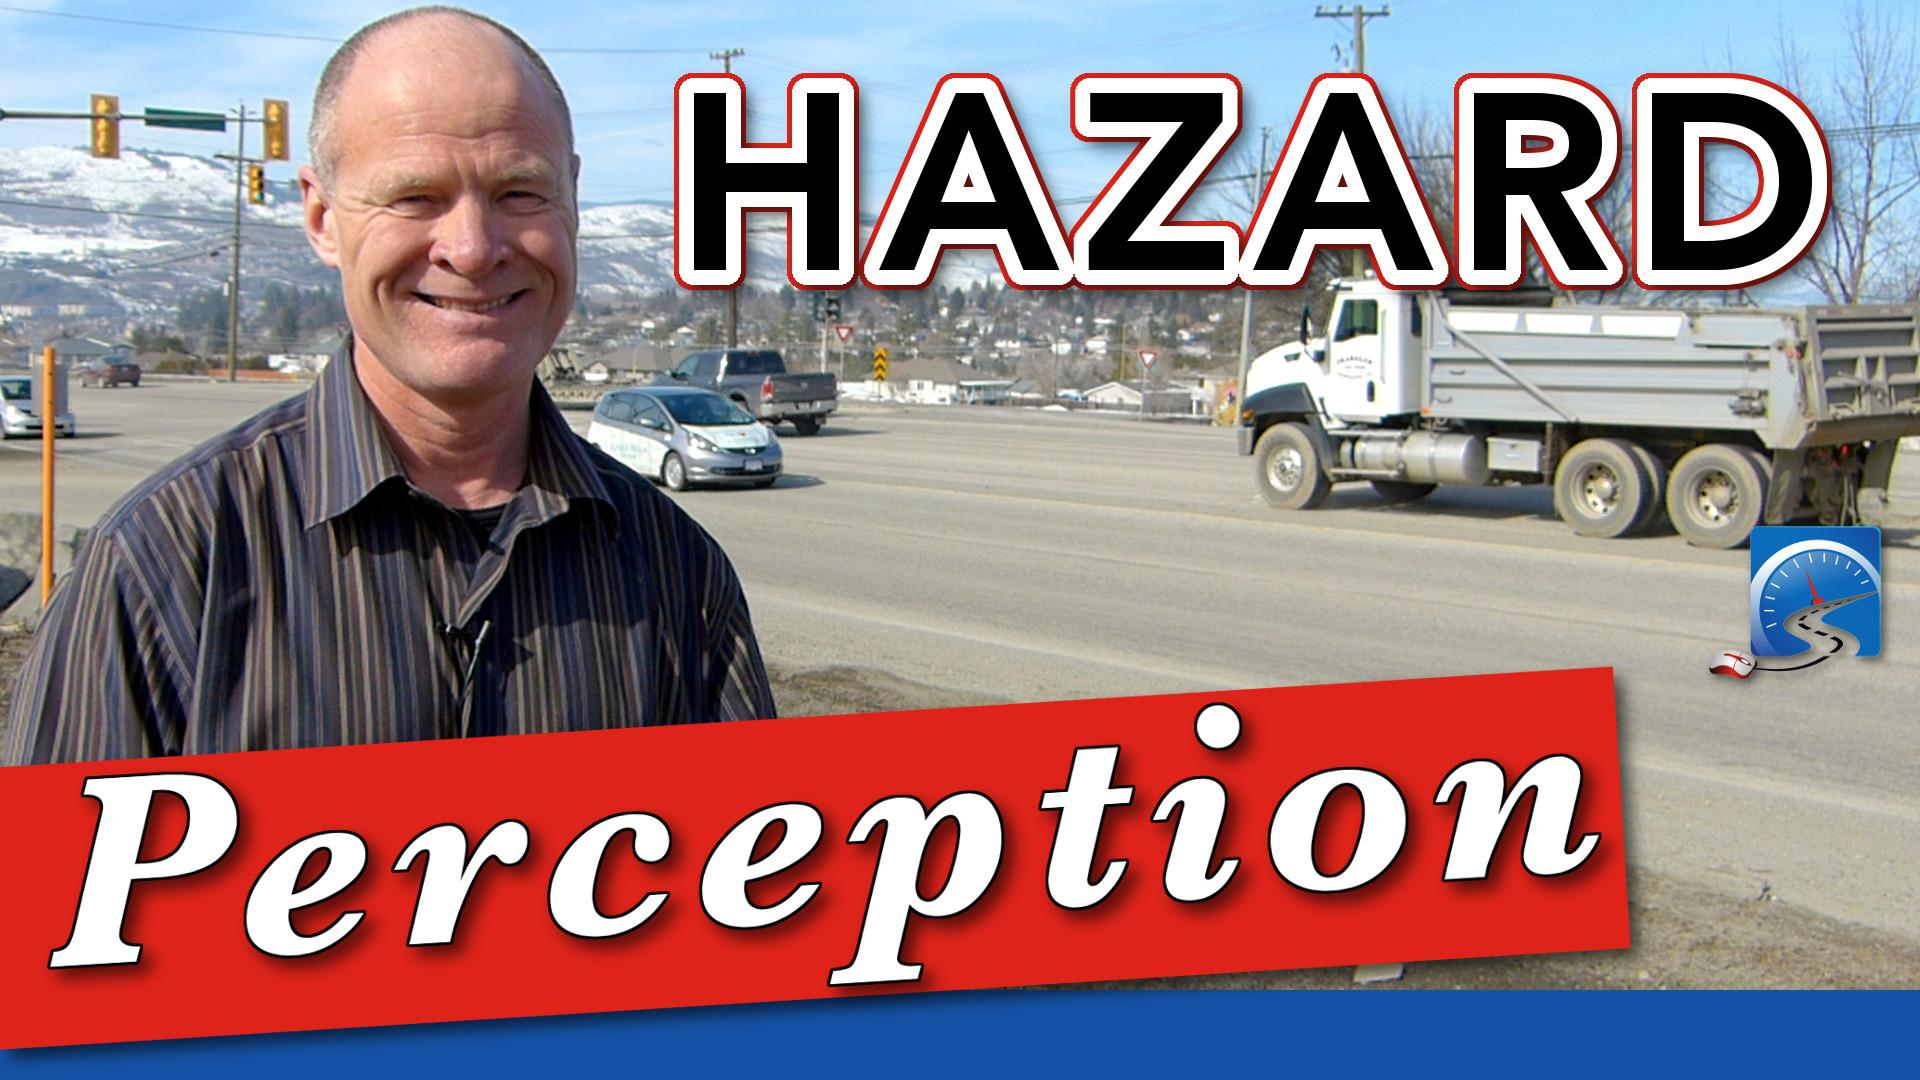 The ability to perceive hazards is a key skill to being crash free!